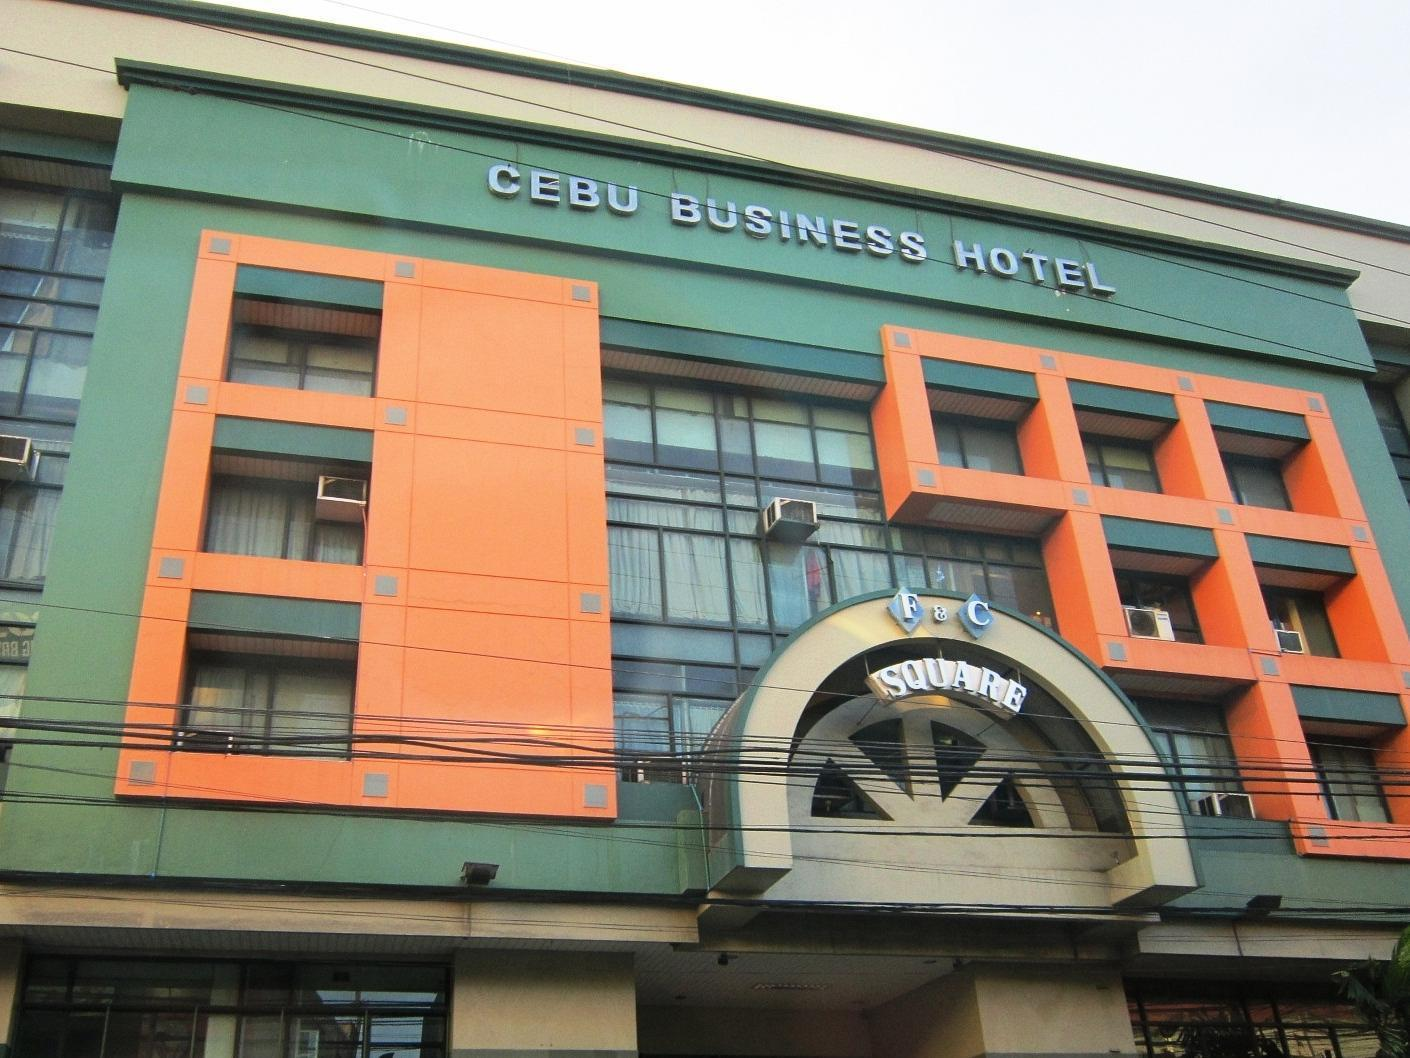 Cebu Business Hotel Cebu-stad